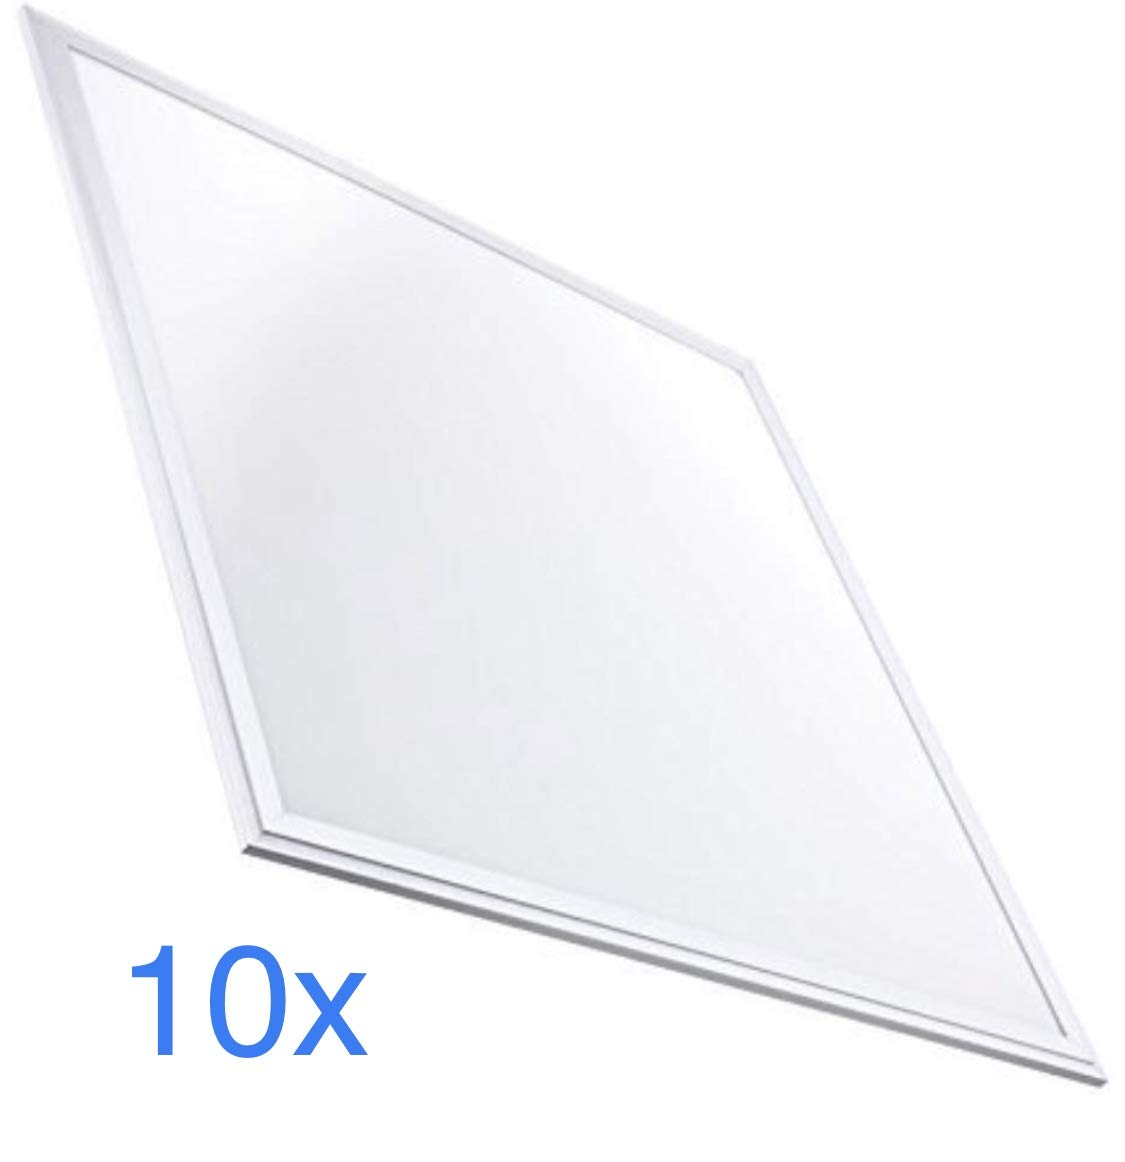 (La) 10x LED-Panel Slim 60 x 60 cm, 40 W 3200 lm, Kaltweiß 6500 K